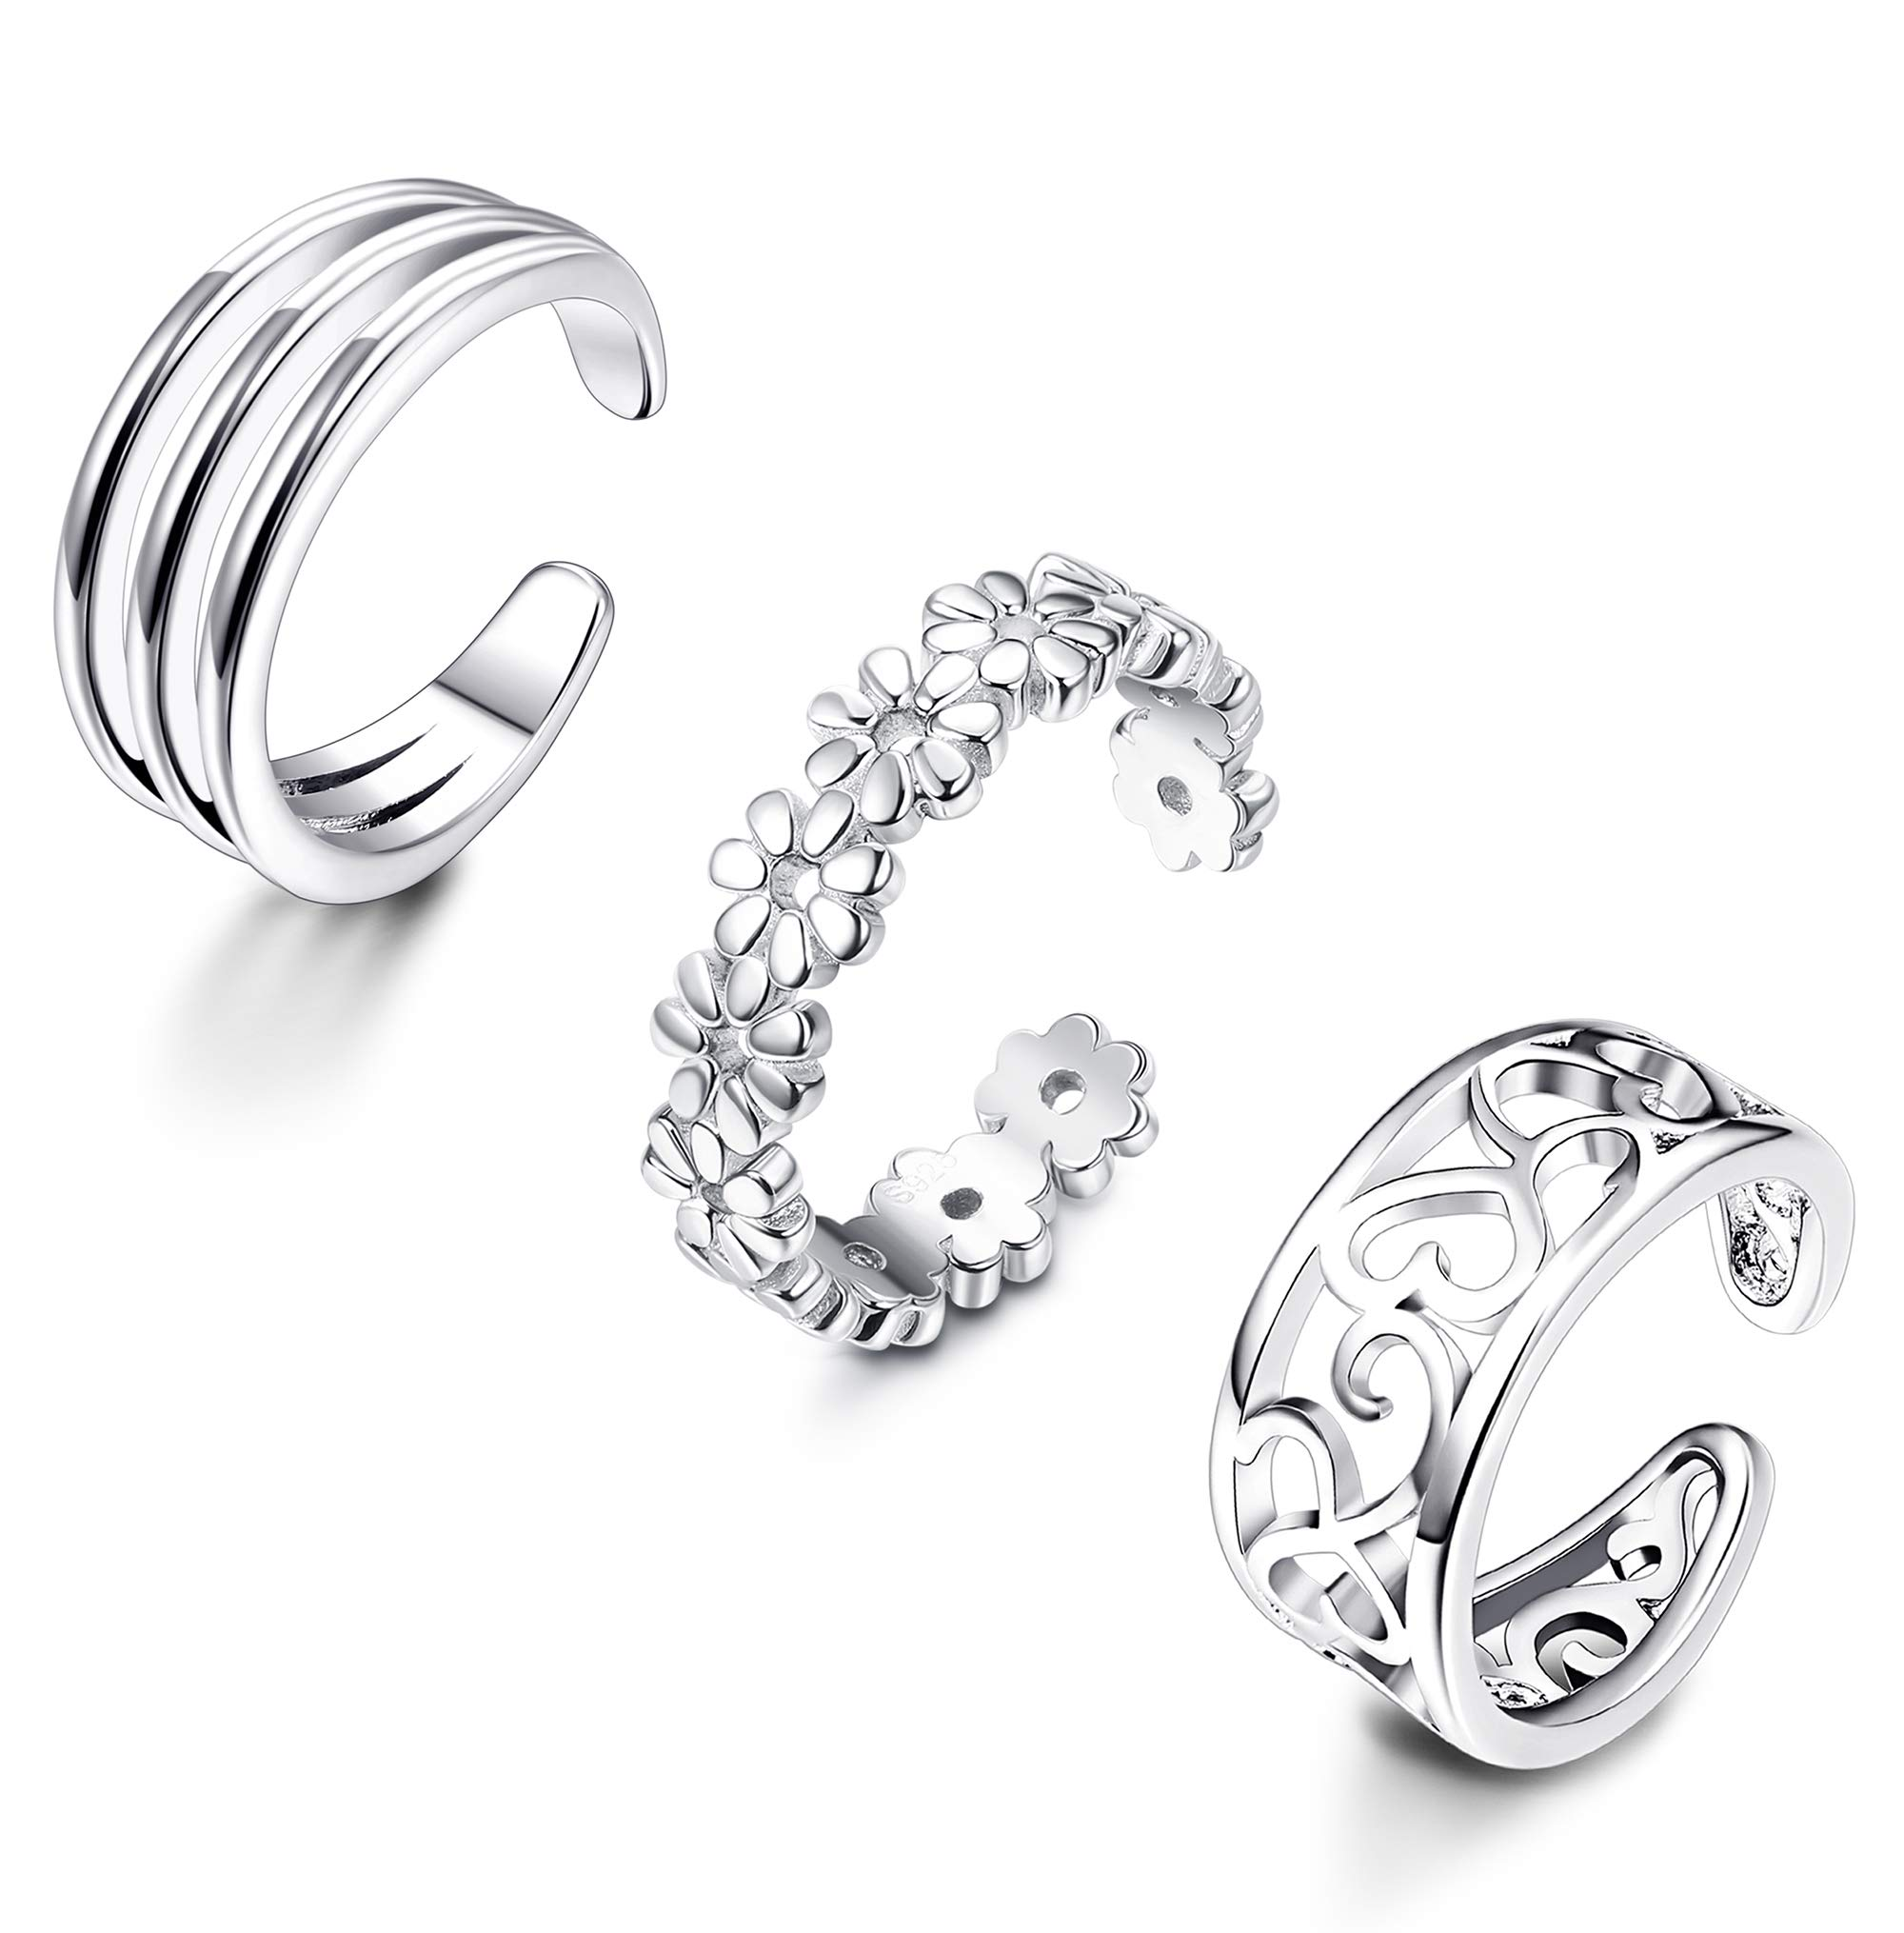 LOYALLOOK 925 Sterling Silver Open Toe Rings Set for Women Simple Thin CZ Tail Band Ring Adjustable